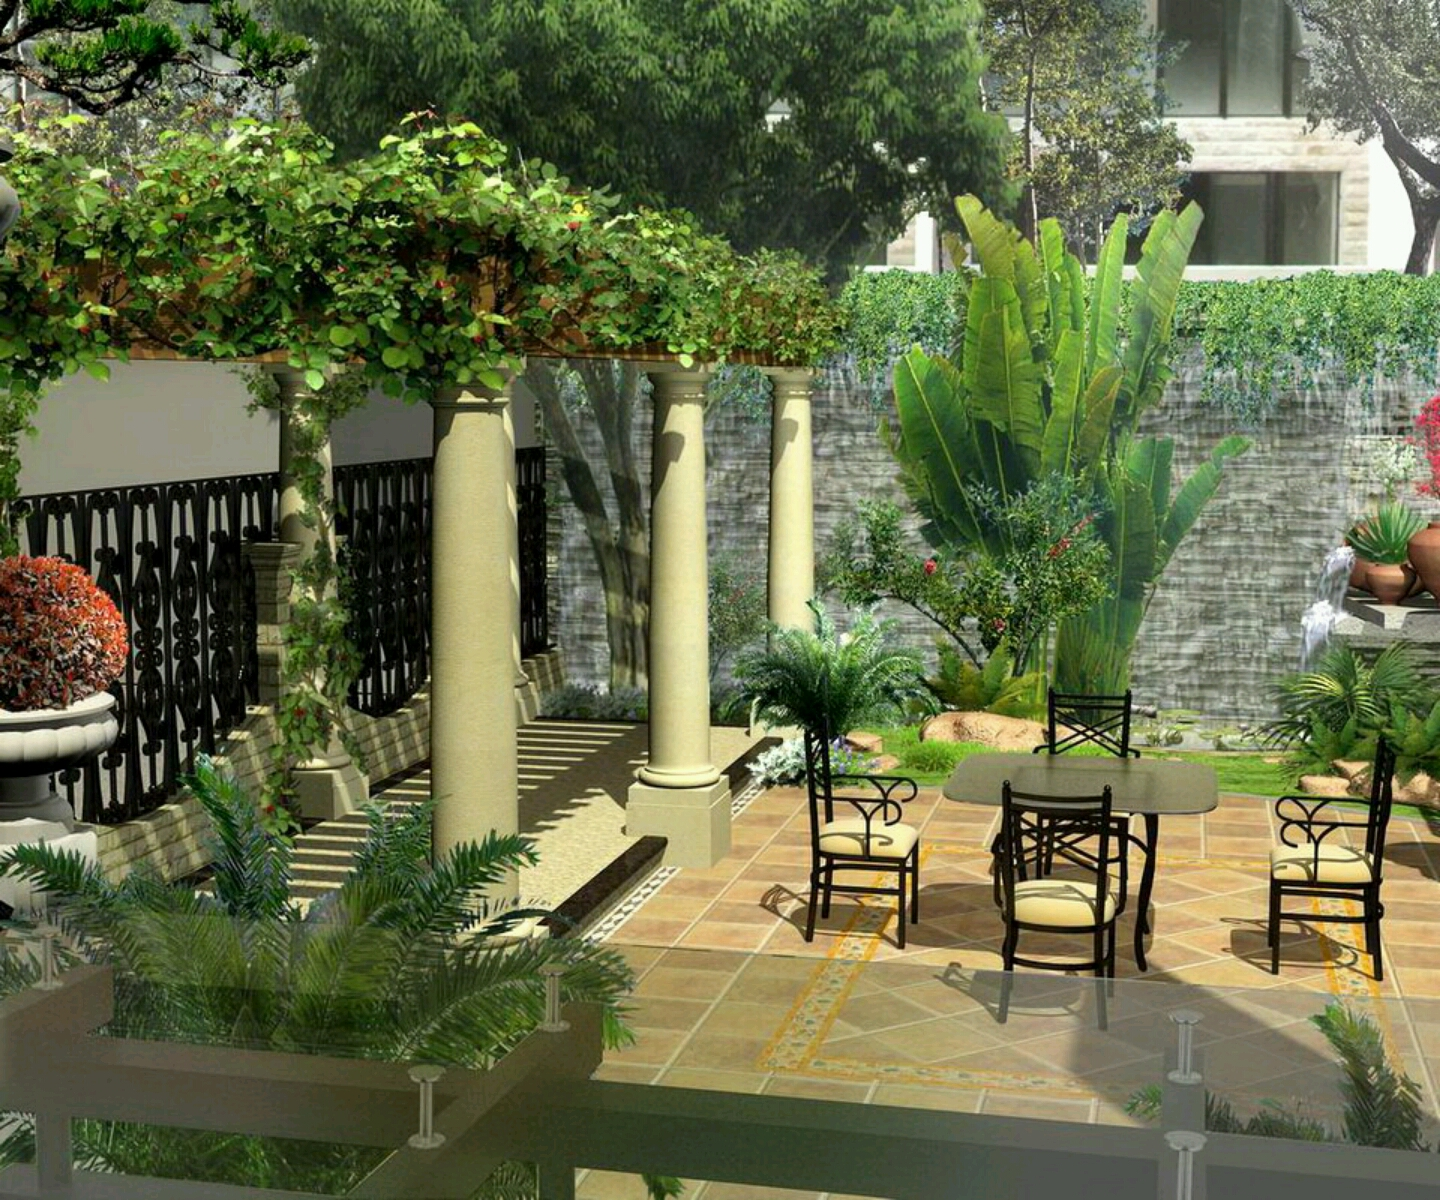 New home designs latest modern homes gardens designs for House garden designs